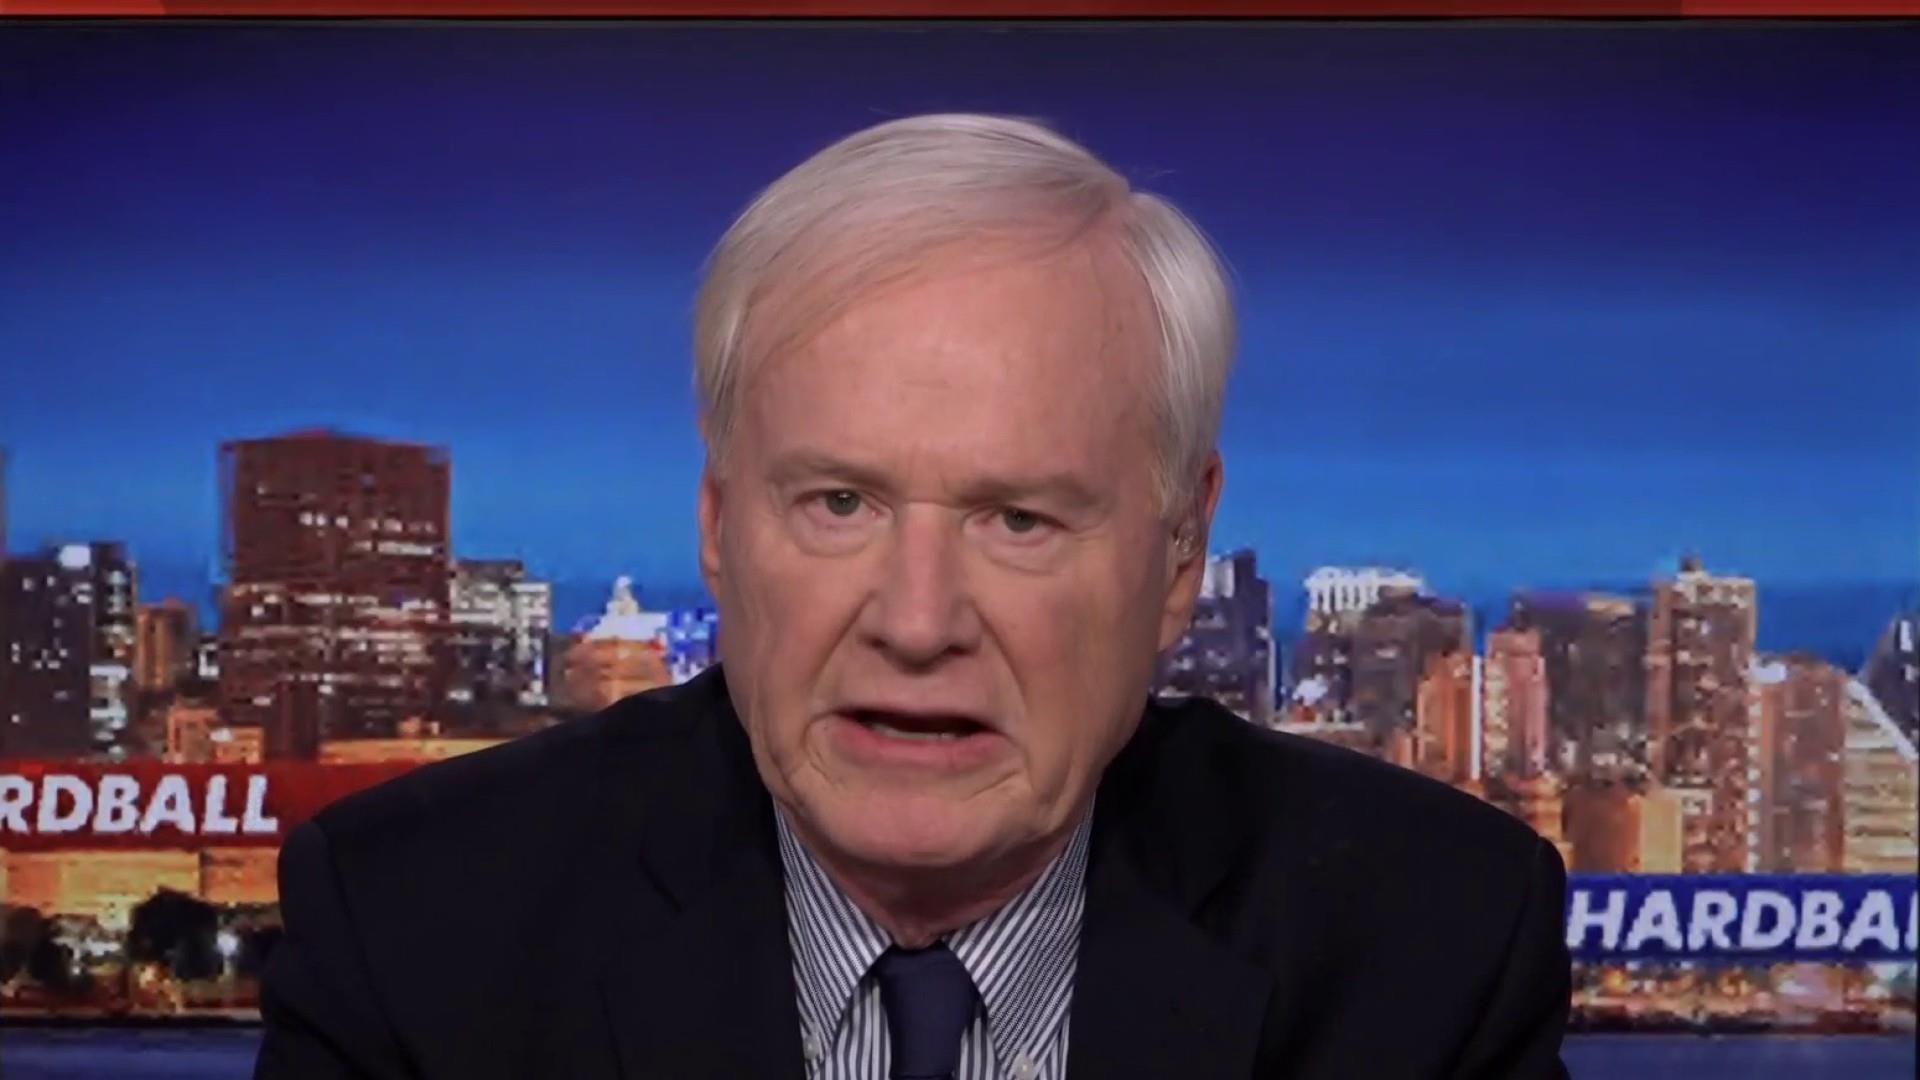 Matthews: Until Trump, I never imagined a President attacking a deceased rival